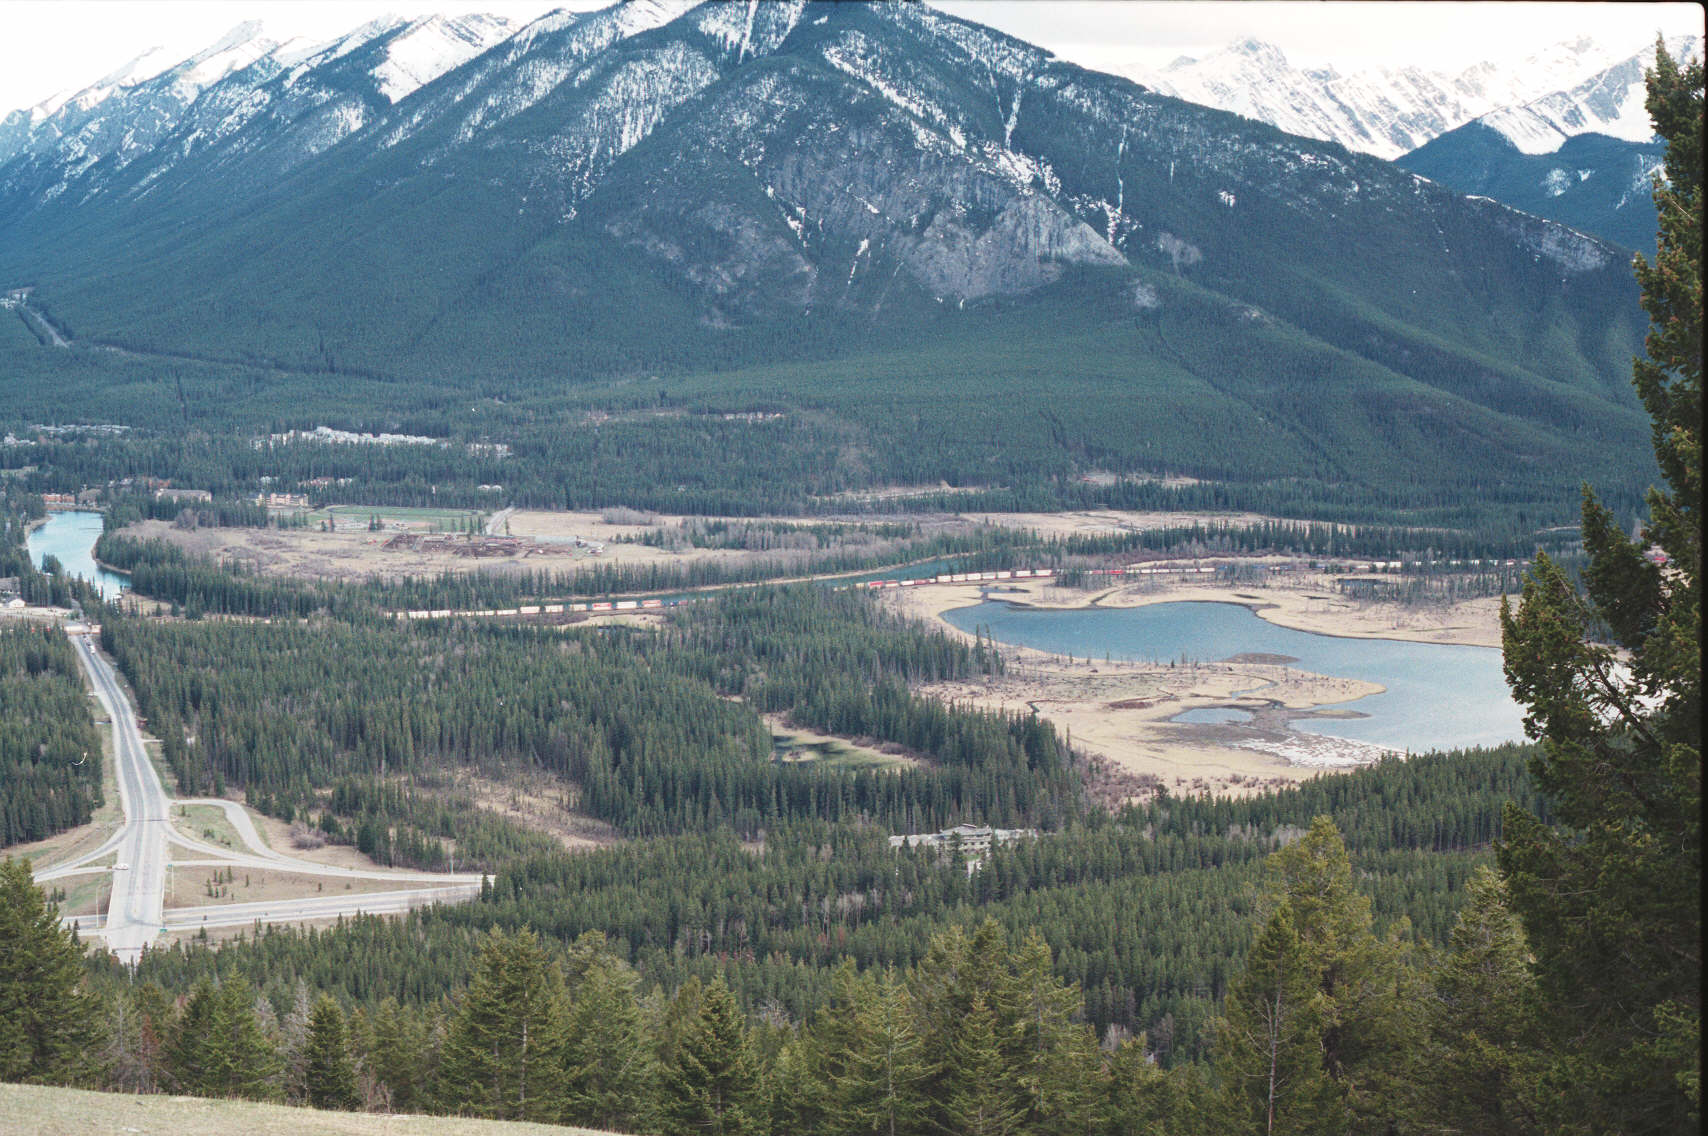 Banff Area Alberta Canada Vacation Pictures